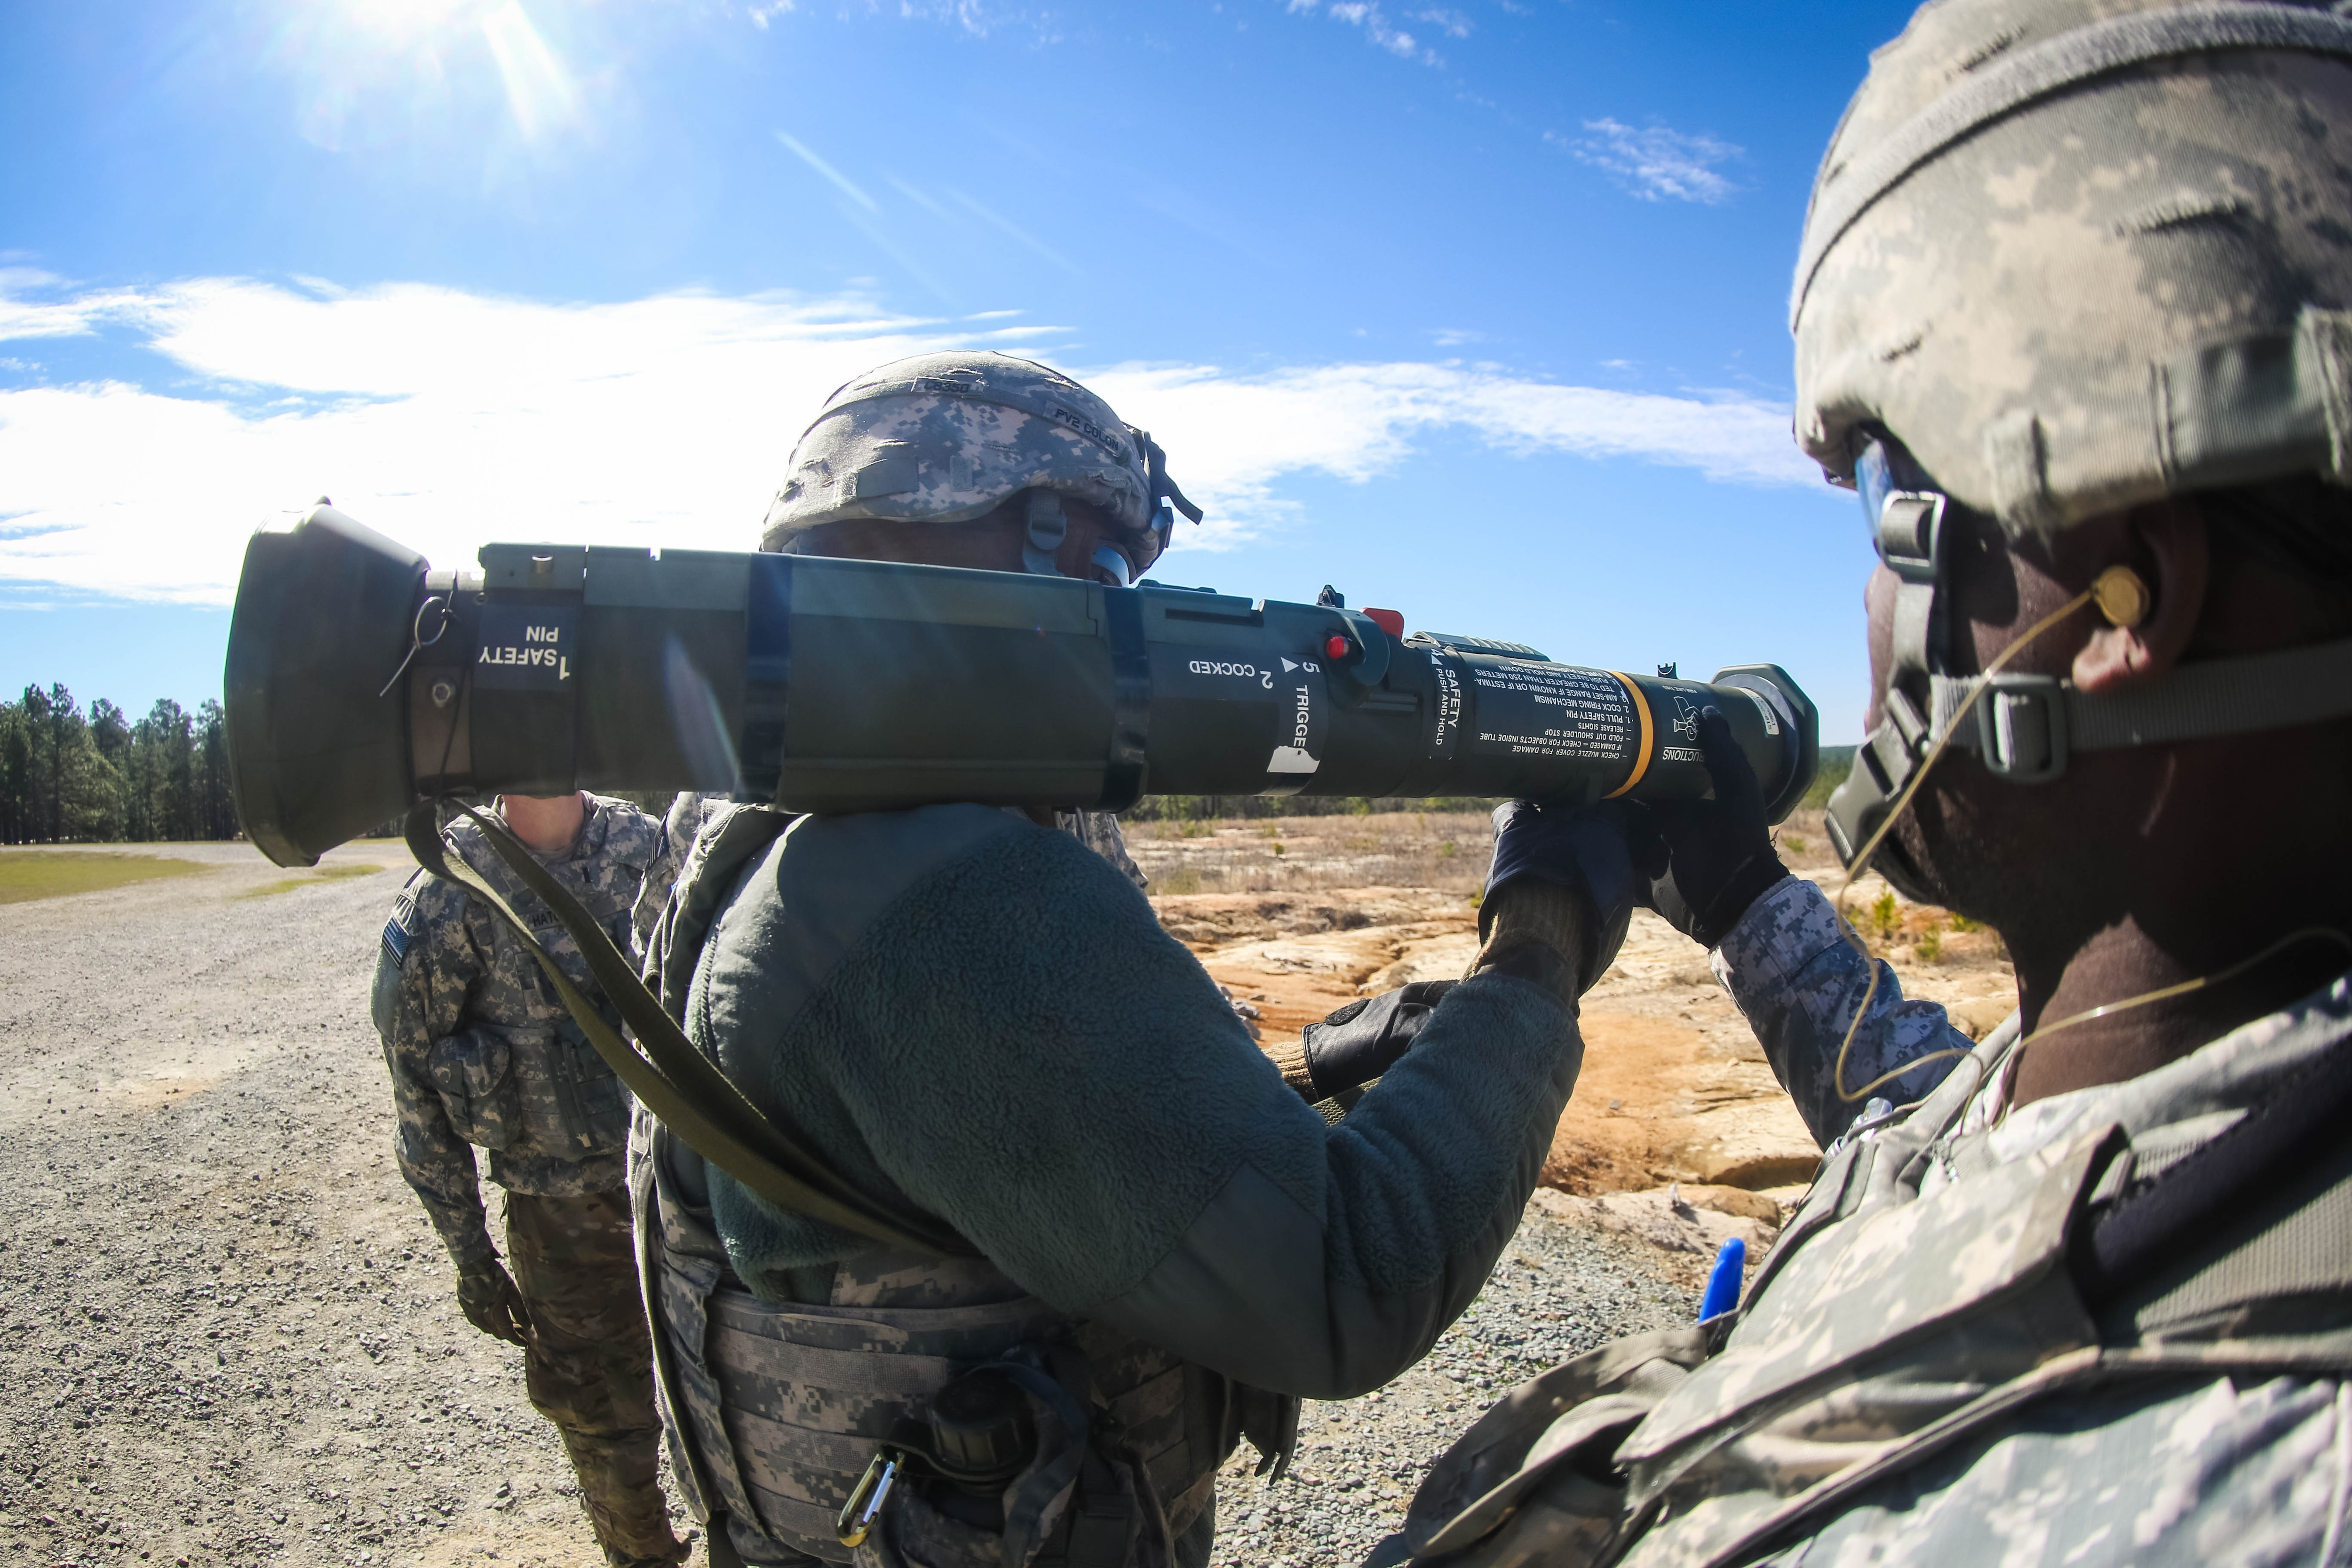 Are shoulder-fired weapons causing traumatic brain injuries? How the Army plans to find out